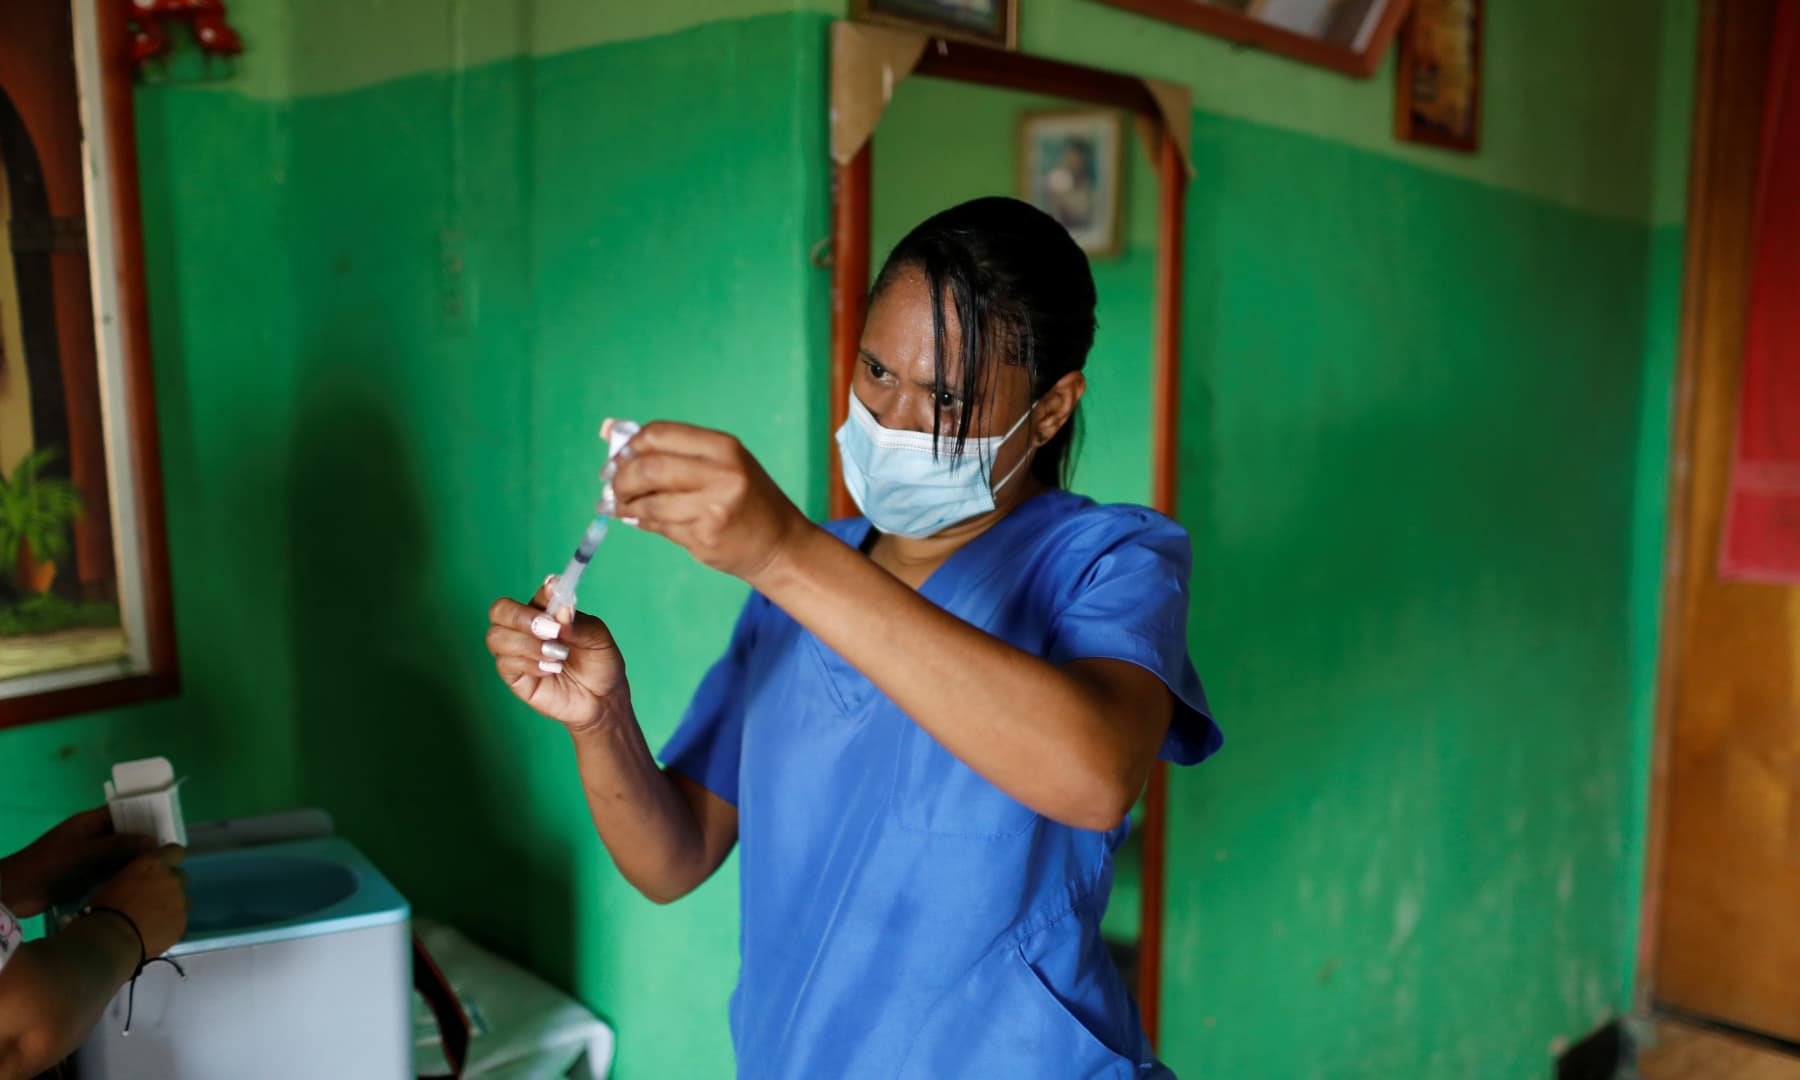 A nurse prepares a dose of the Sinopharm vaccine against the coronavirus as healthcare workers go from door to door to inoculate the elderly and people with disabilities, in Caracas, Venezuela, on September 18, 2021. — Reuters